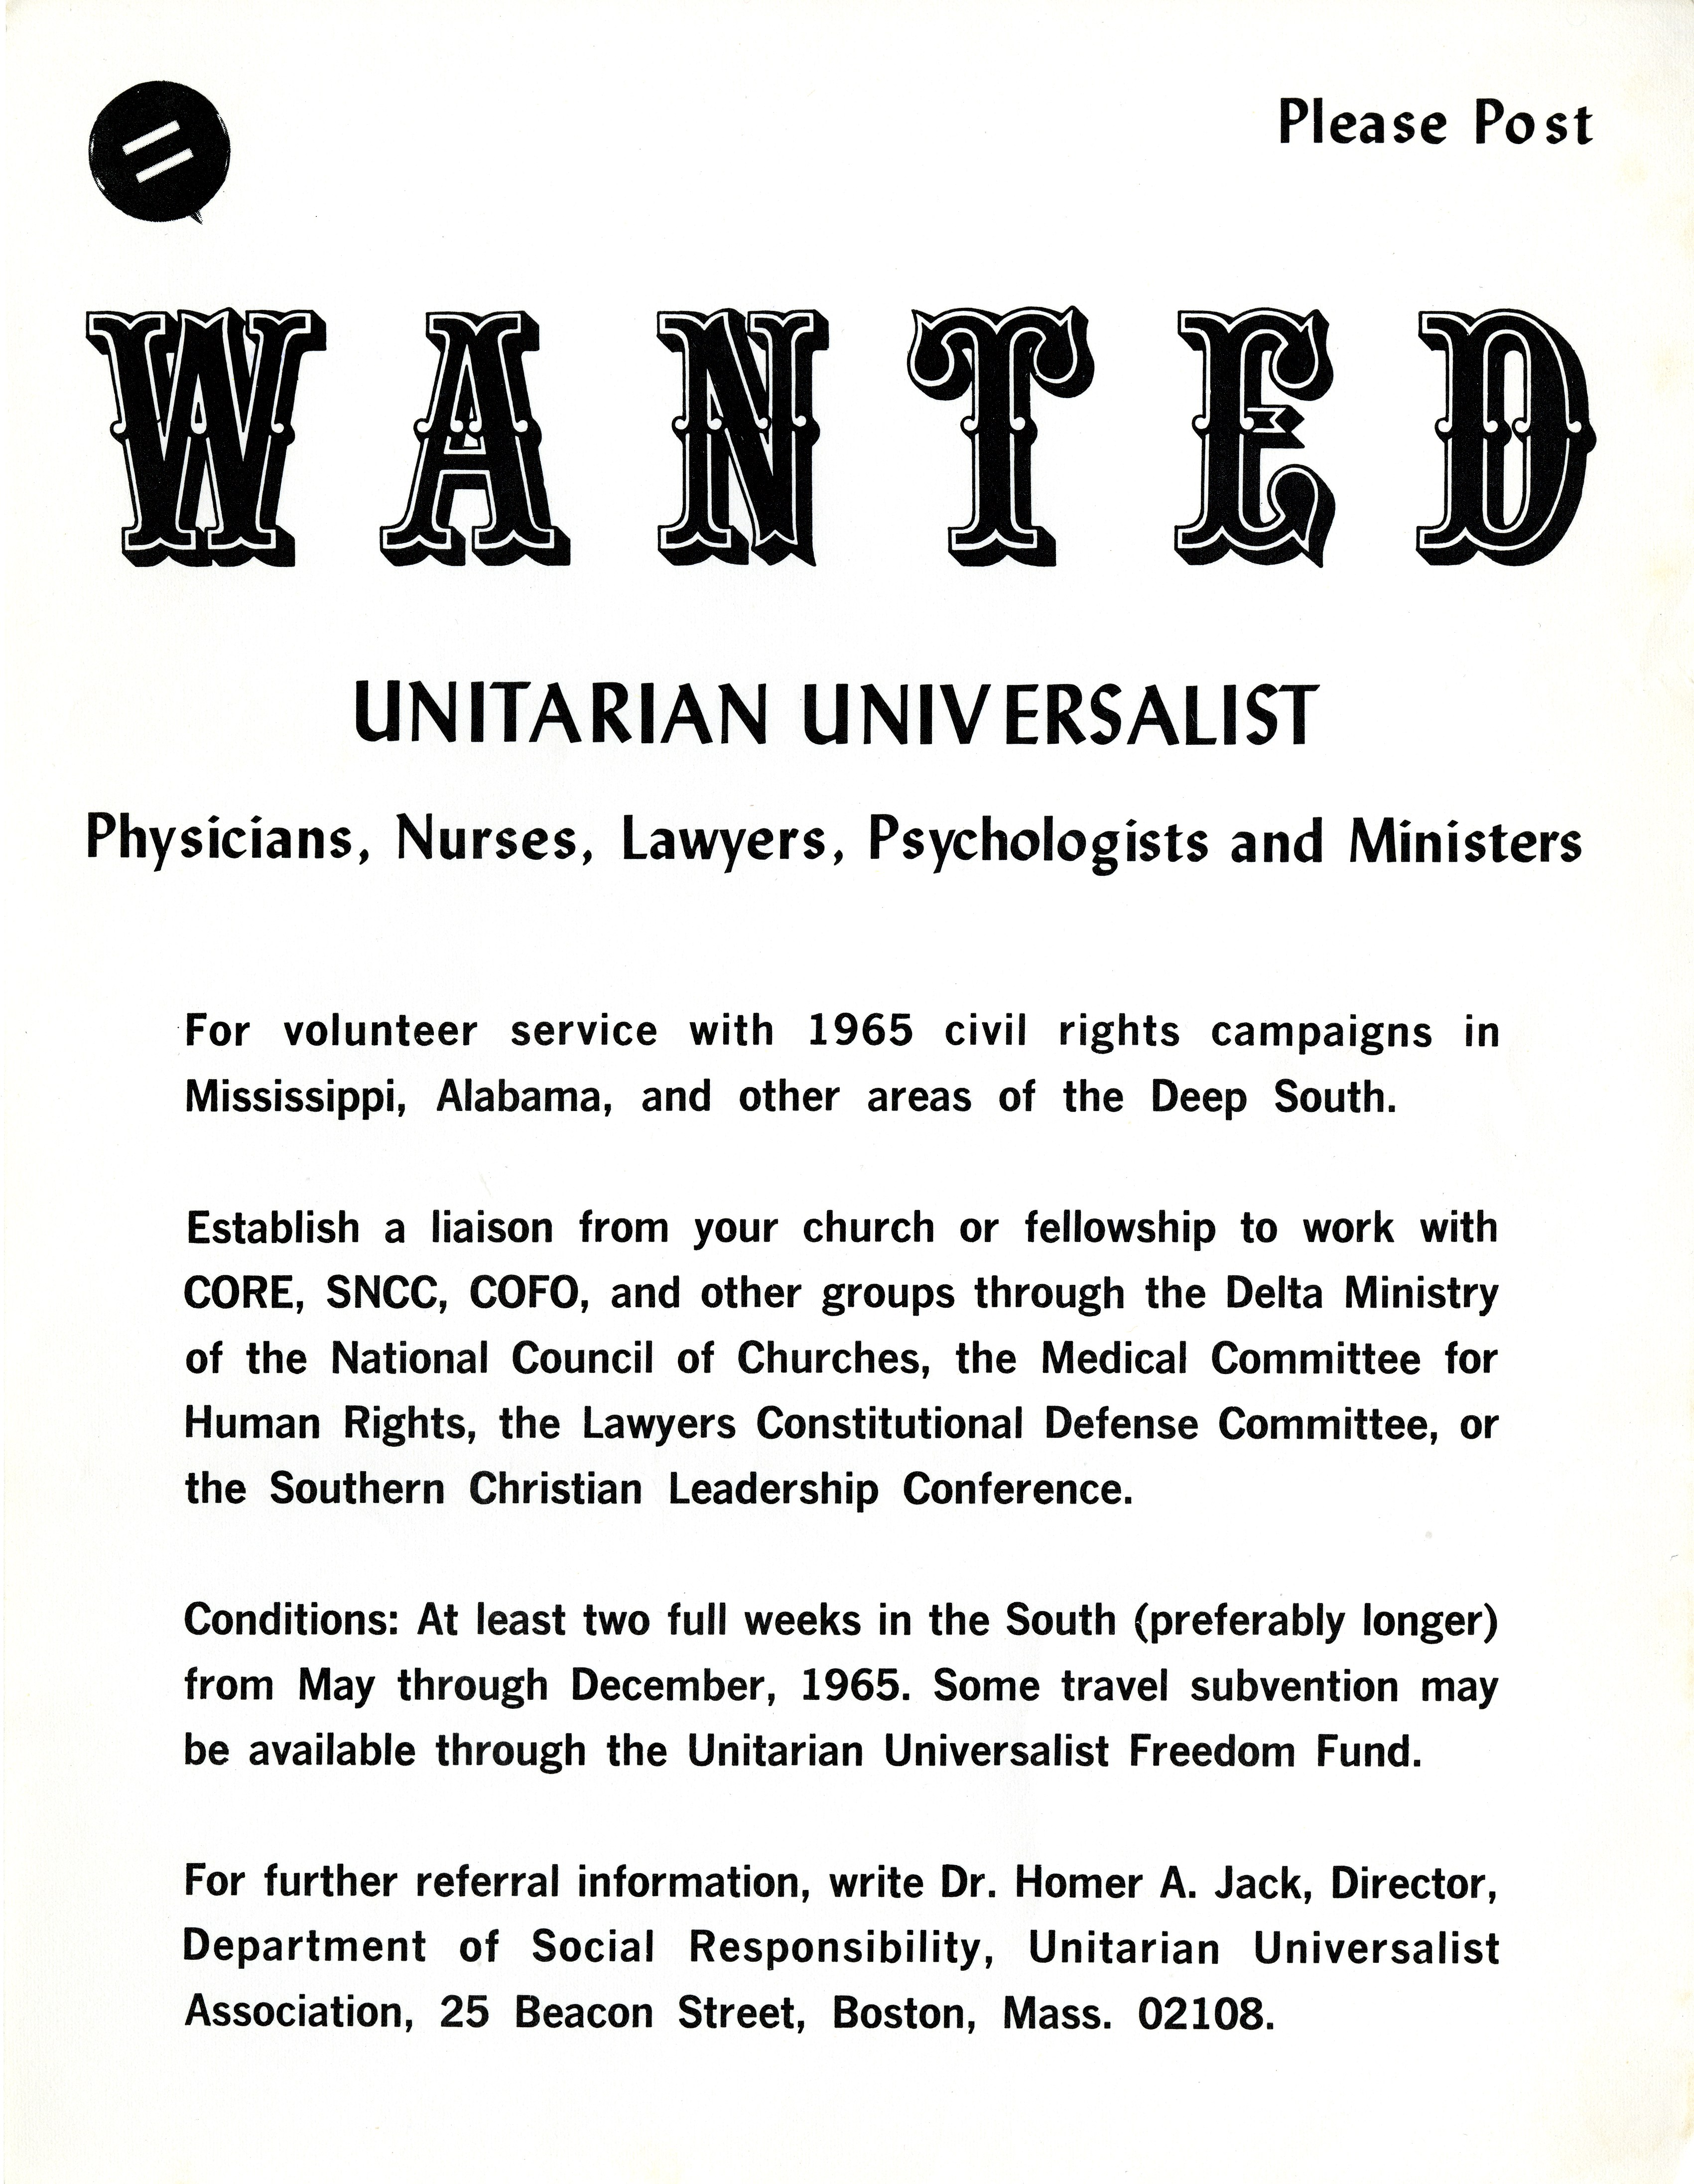 Campaign Update Archives Physicians For Social Responsibility >> Wanted Uu Physicians Nurses Lawyers Psychologists And Ministers